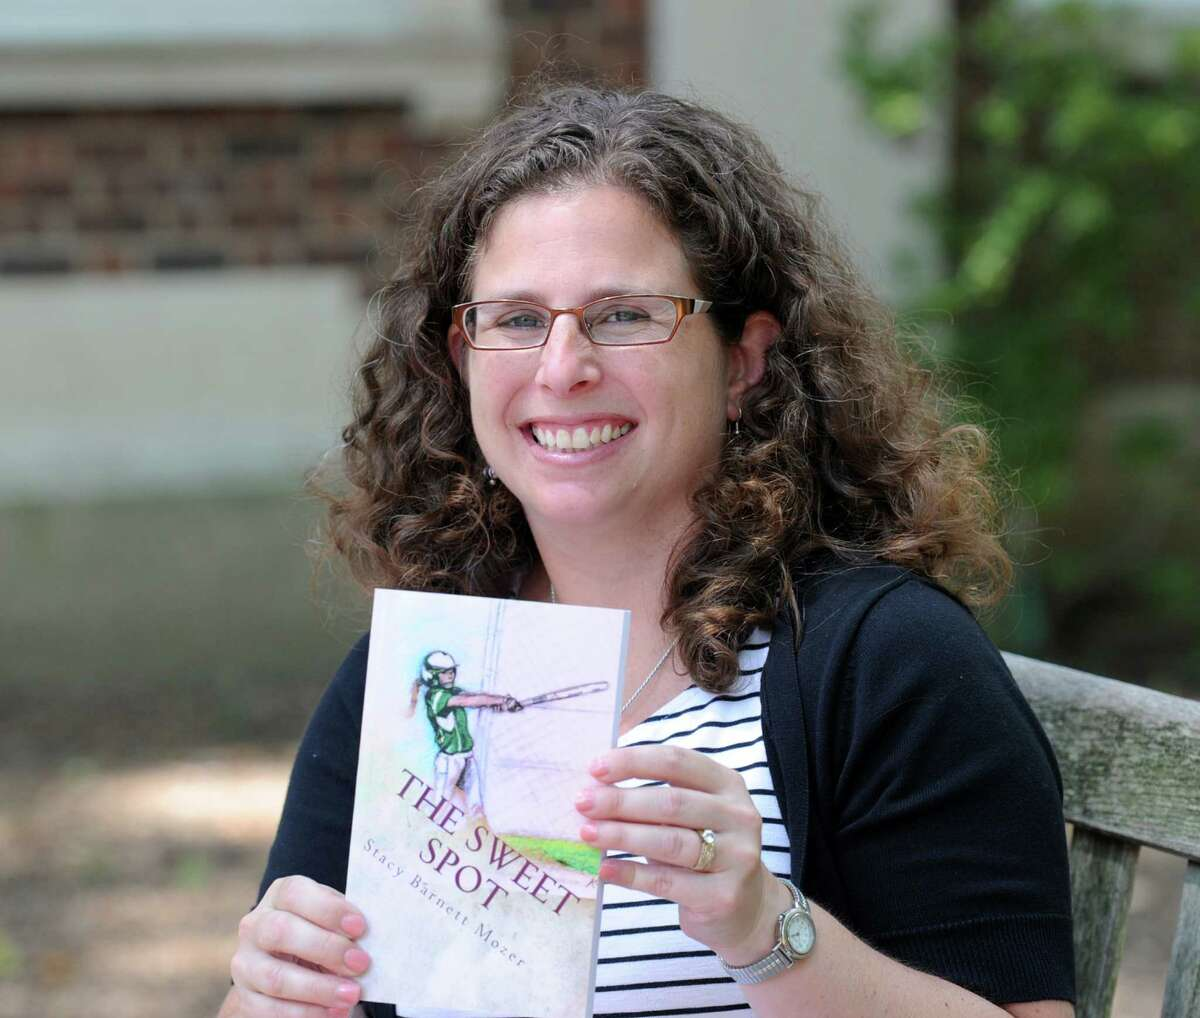 """Stacy Barnett Mozer, an author and Riverside School third-grade teacher, with her book """"The Sweet Spot,"""" at the school in the Riverside section of Greenwich."""